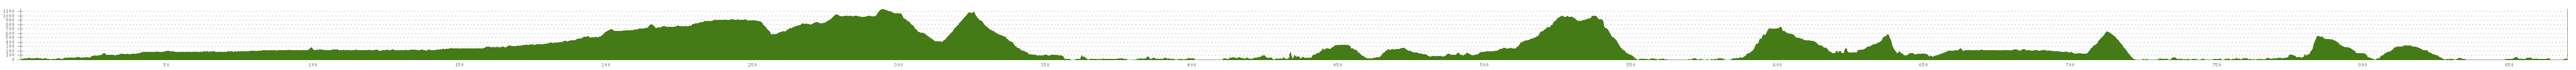 Elevation profile Cycle Route Kristiansand-Ålesund